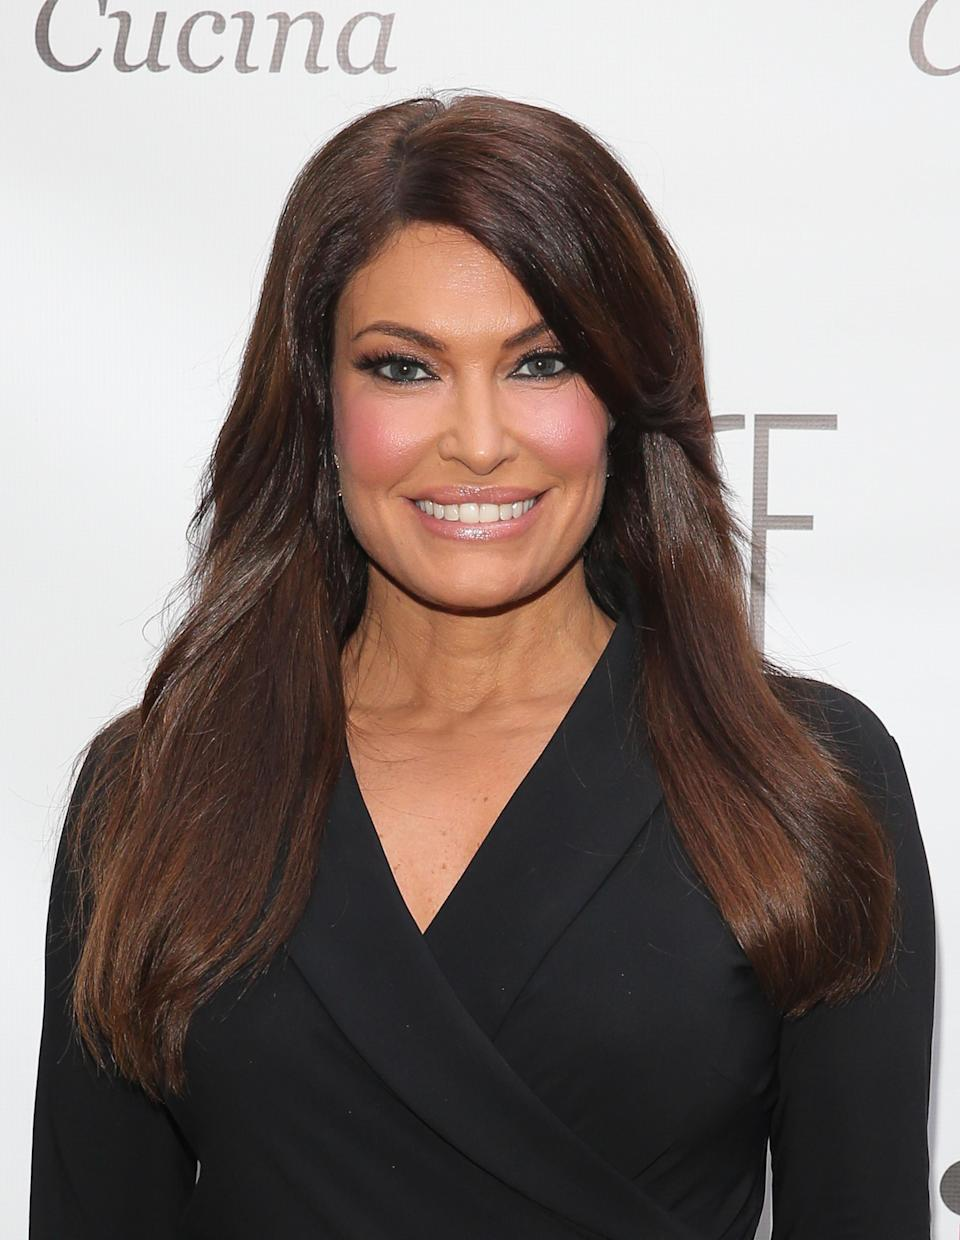 Sources told HuffPost that Kimberly Guilfoyle was pushed to leave Fox News because of her workplace conduct. (Photo: Rob Kim/Getty Images)